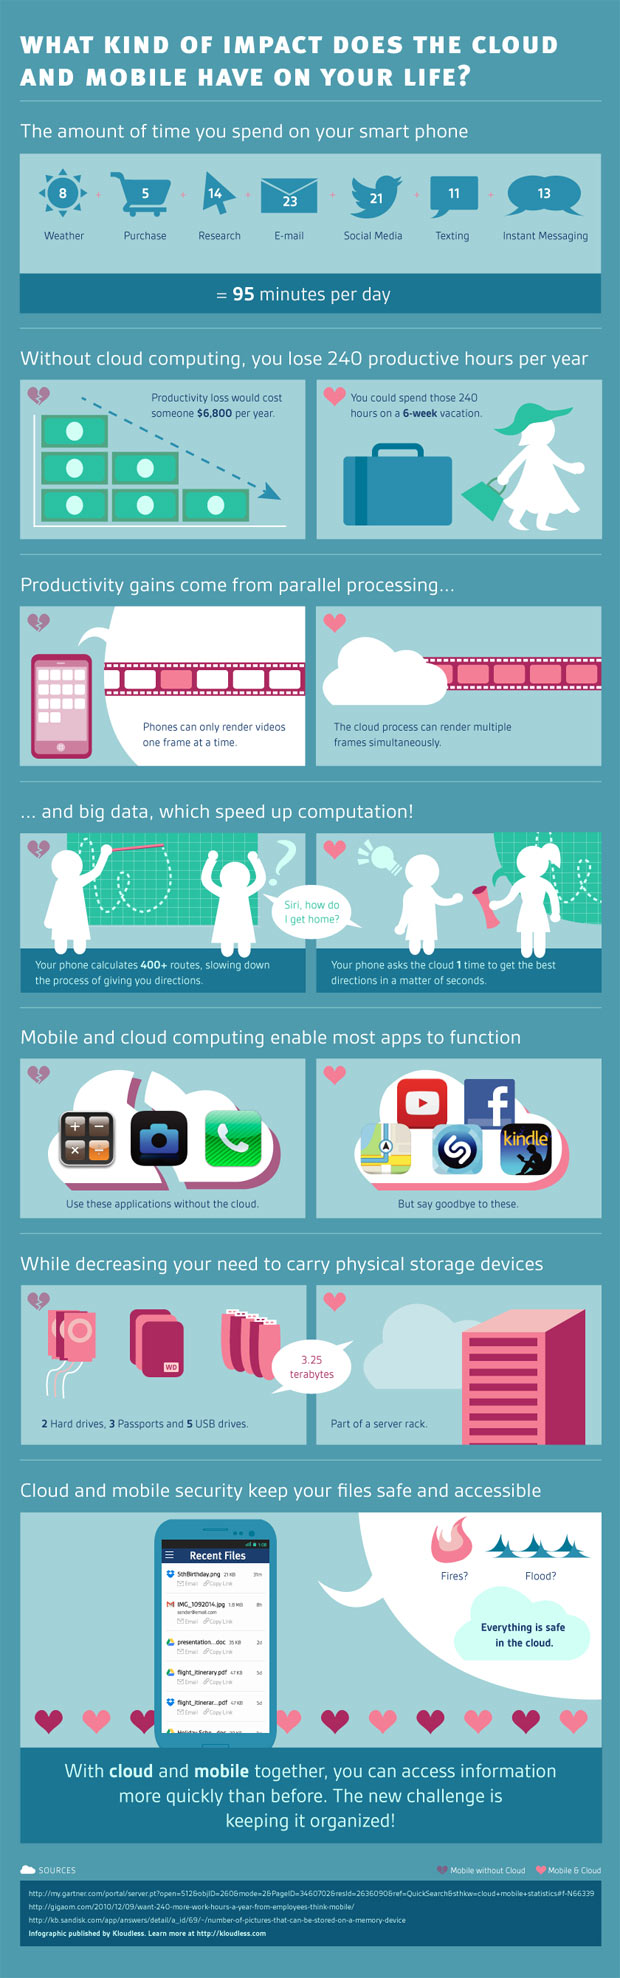 mobile-cloud-infographic